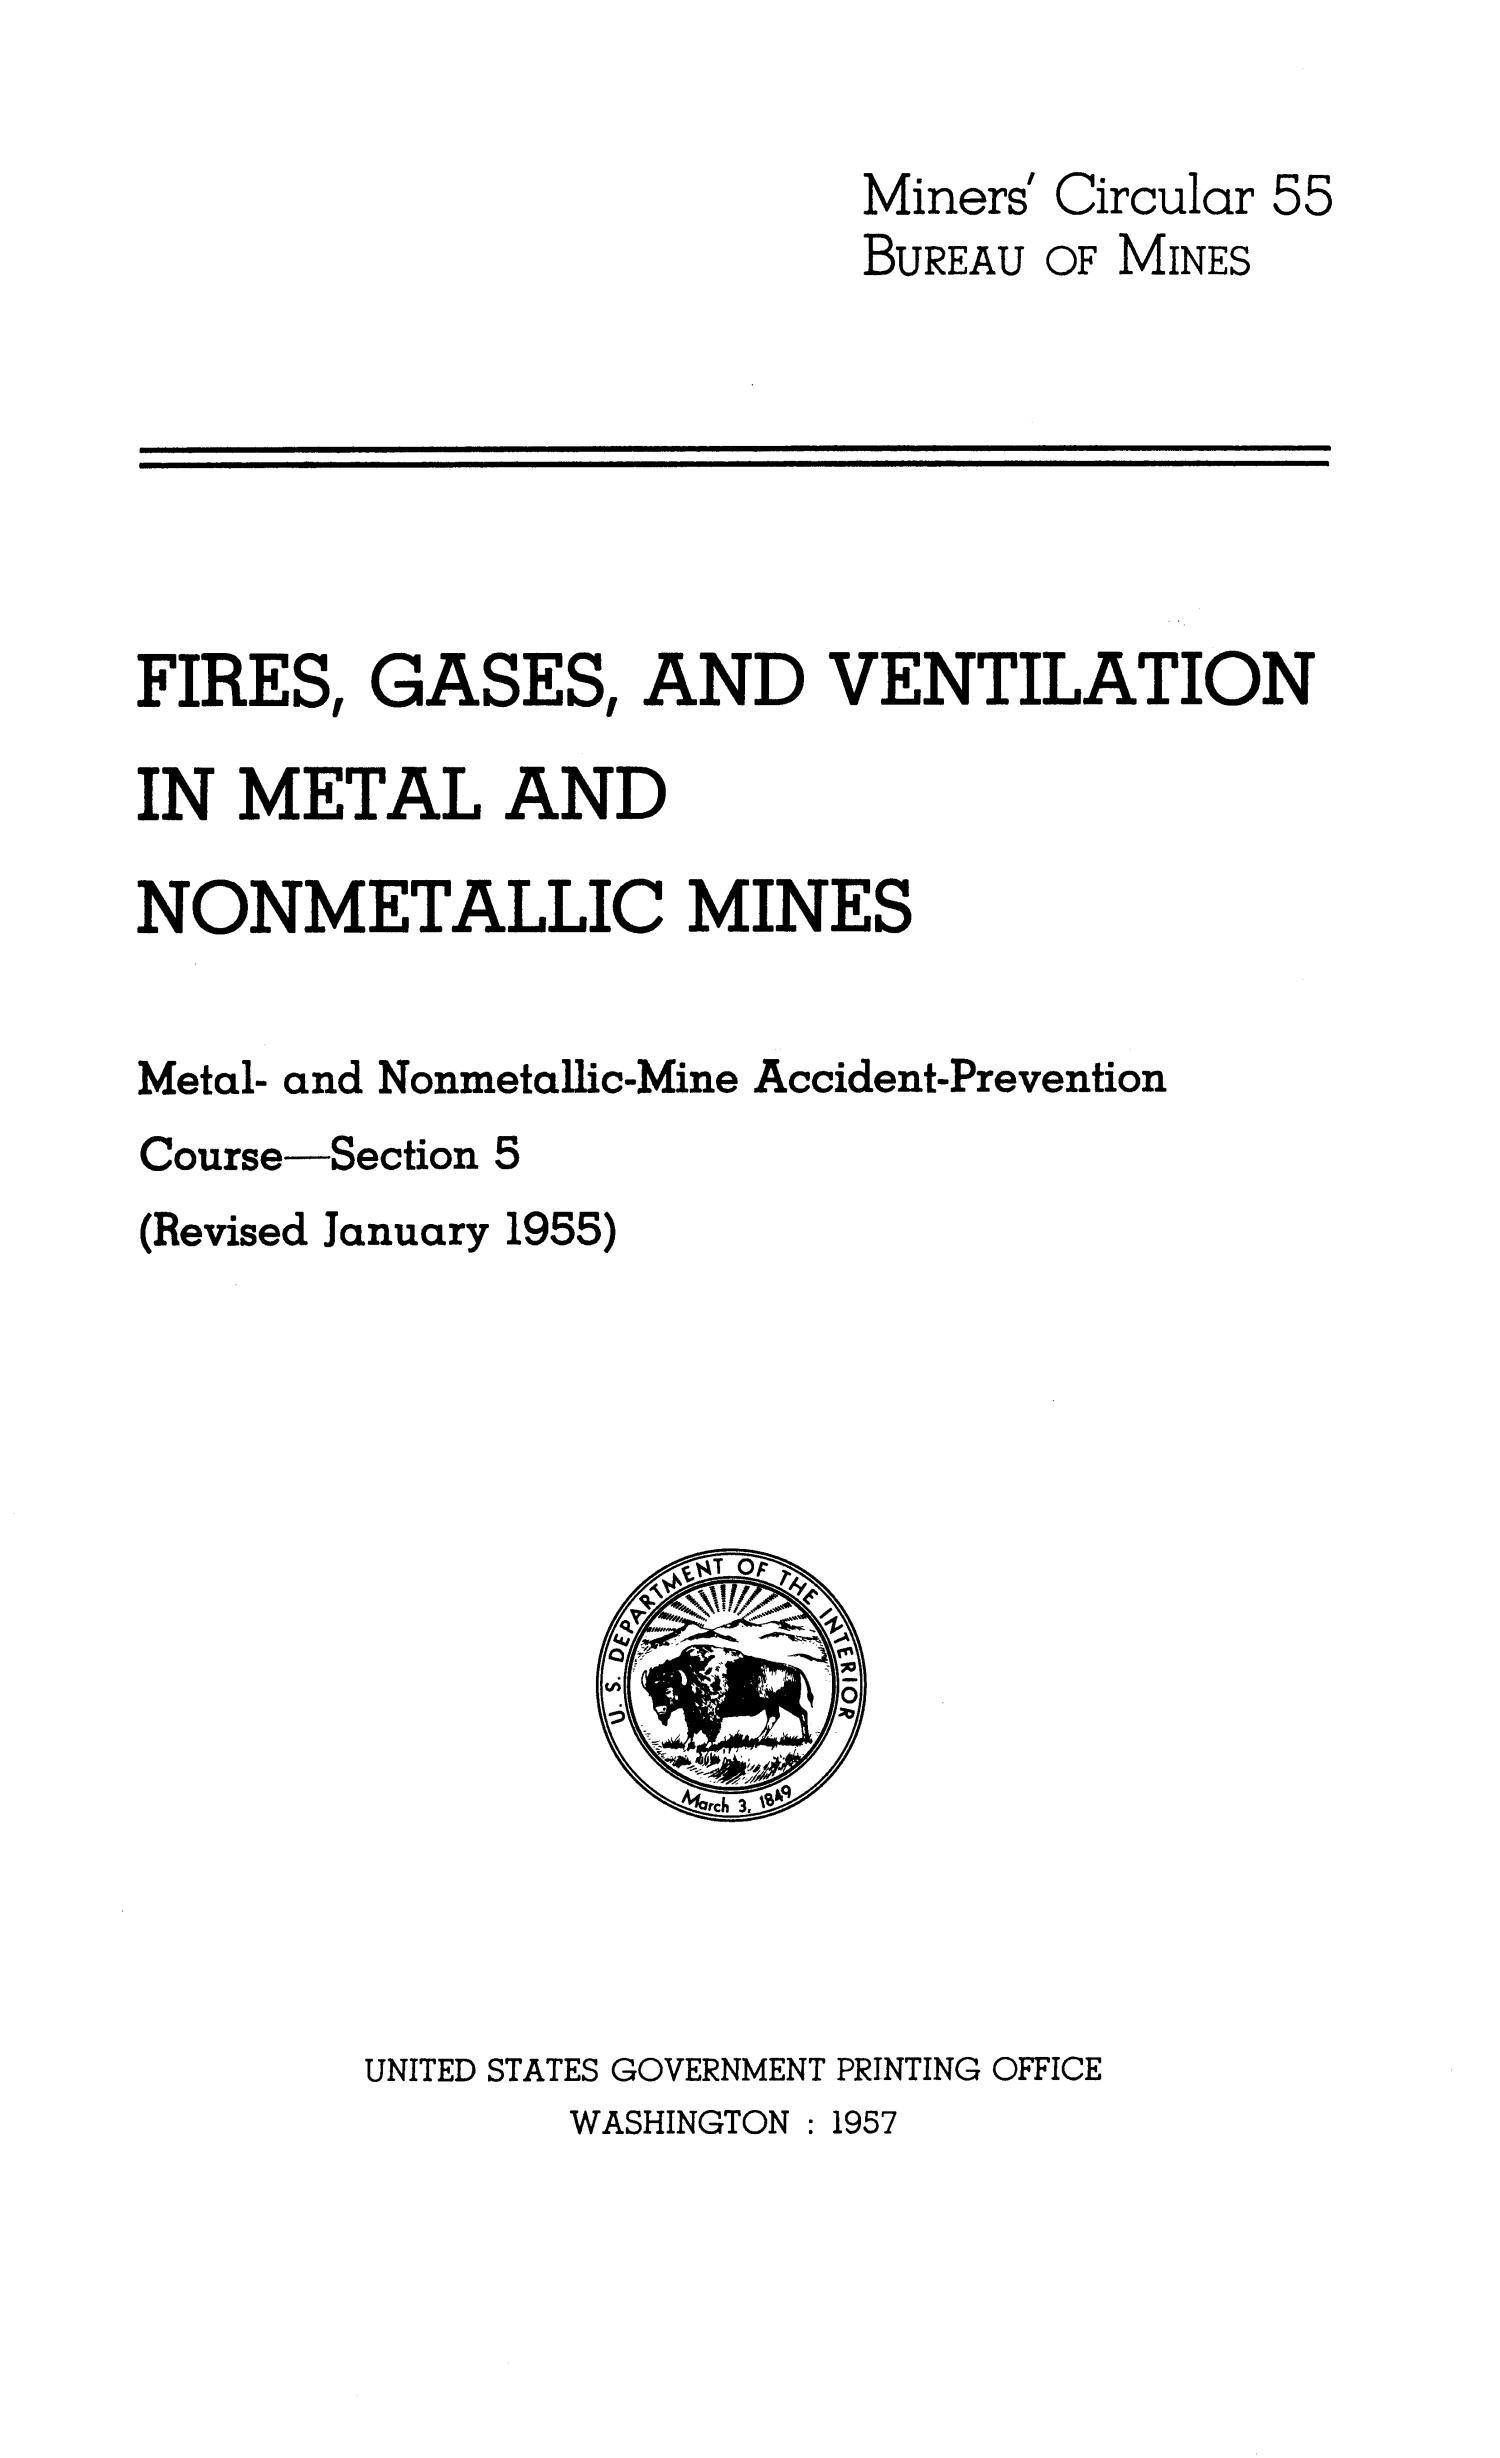 Fires, gases, and ventilation in metal and nonmetallic mines                                                                                                      Title Page